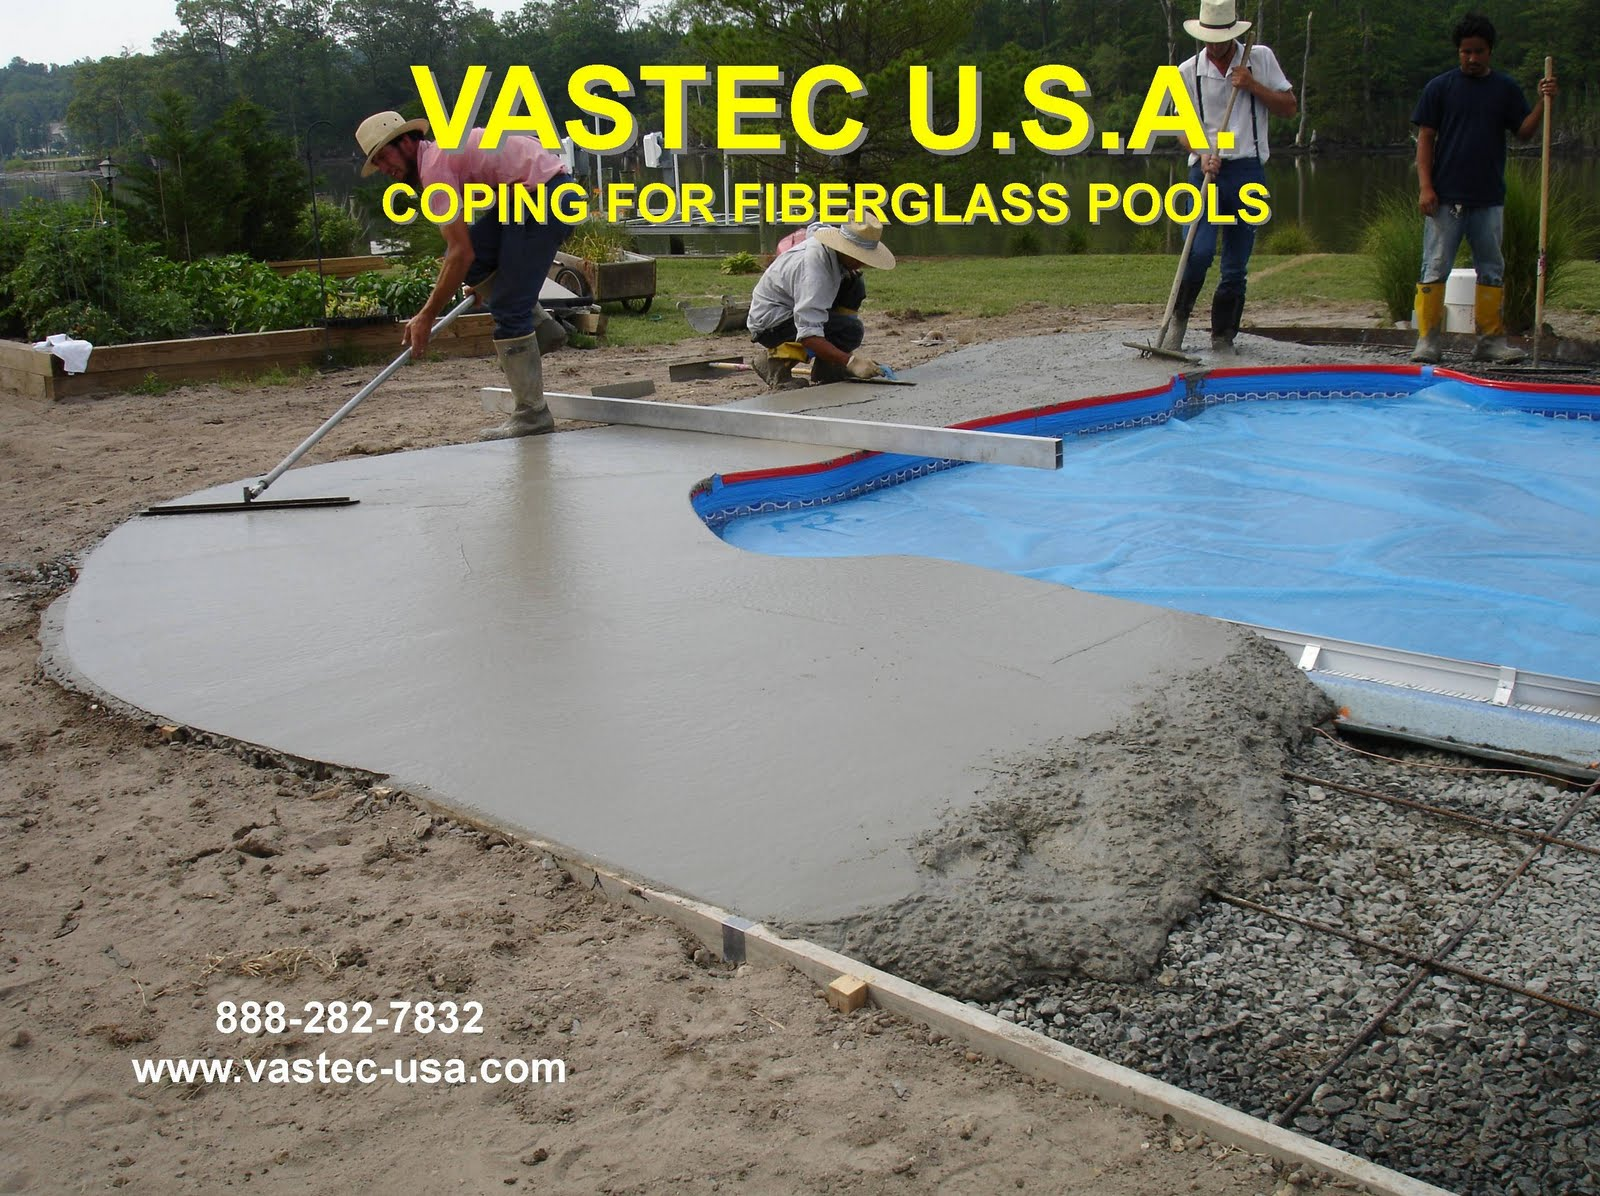 Vastec Pool Coping Vastec Usa September 2010